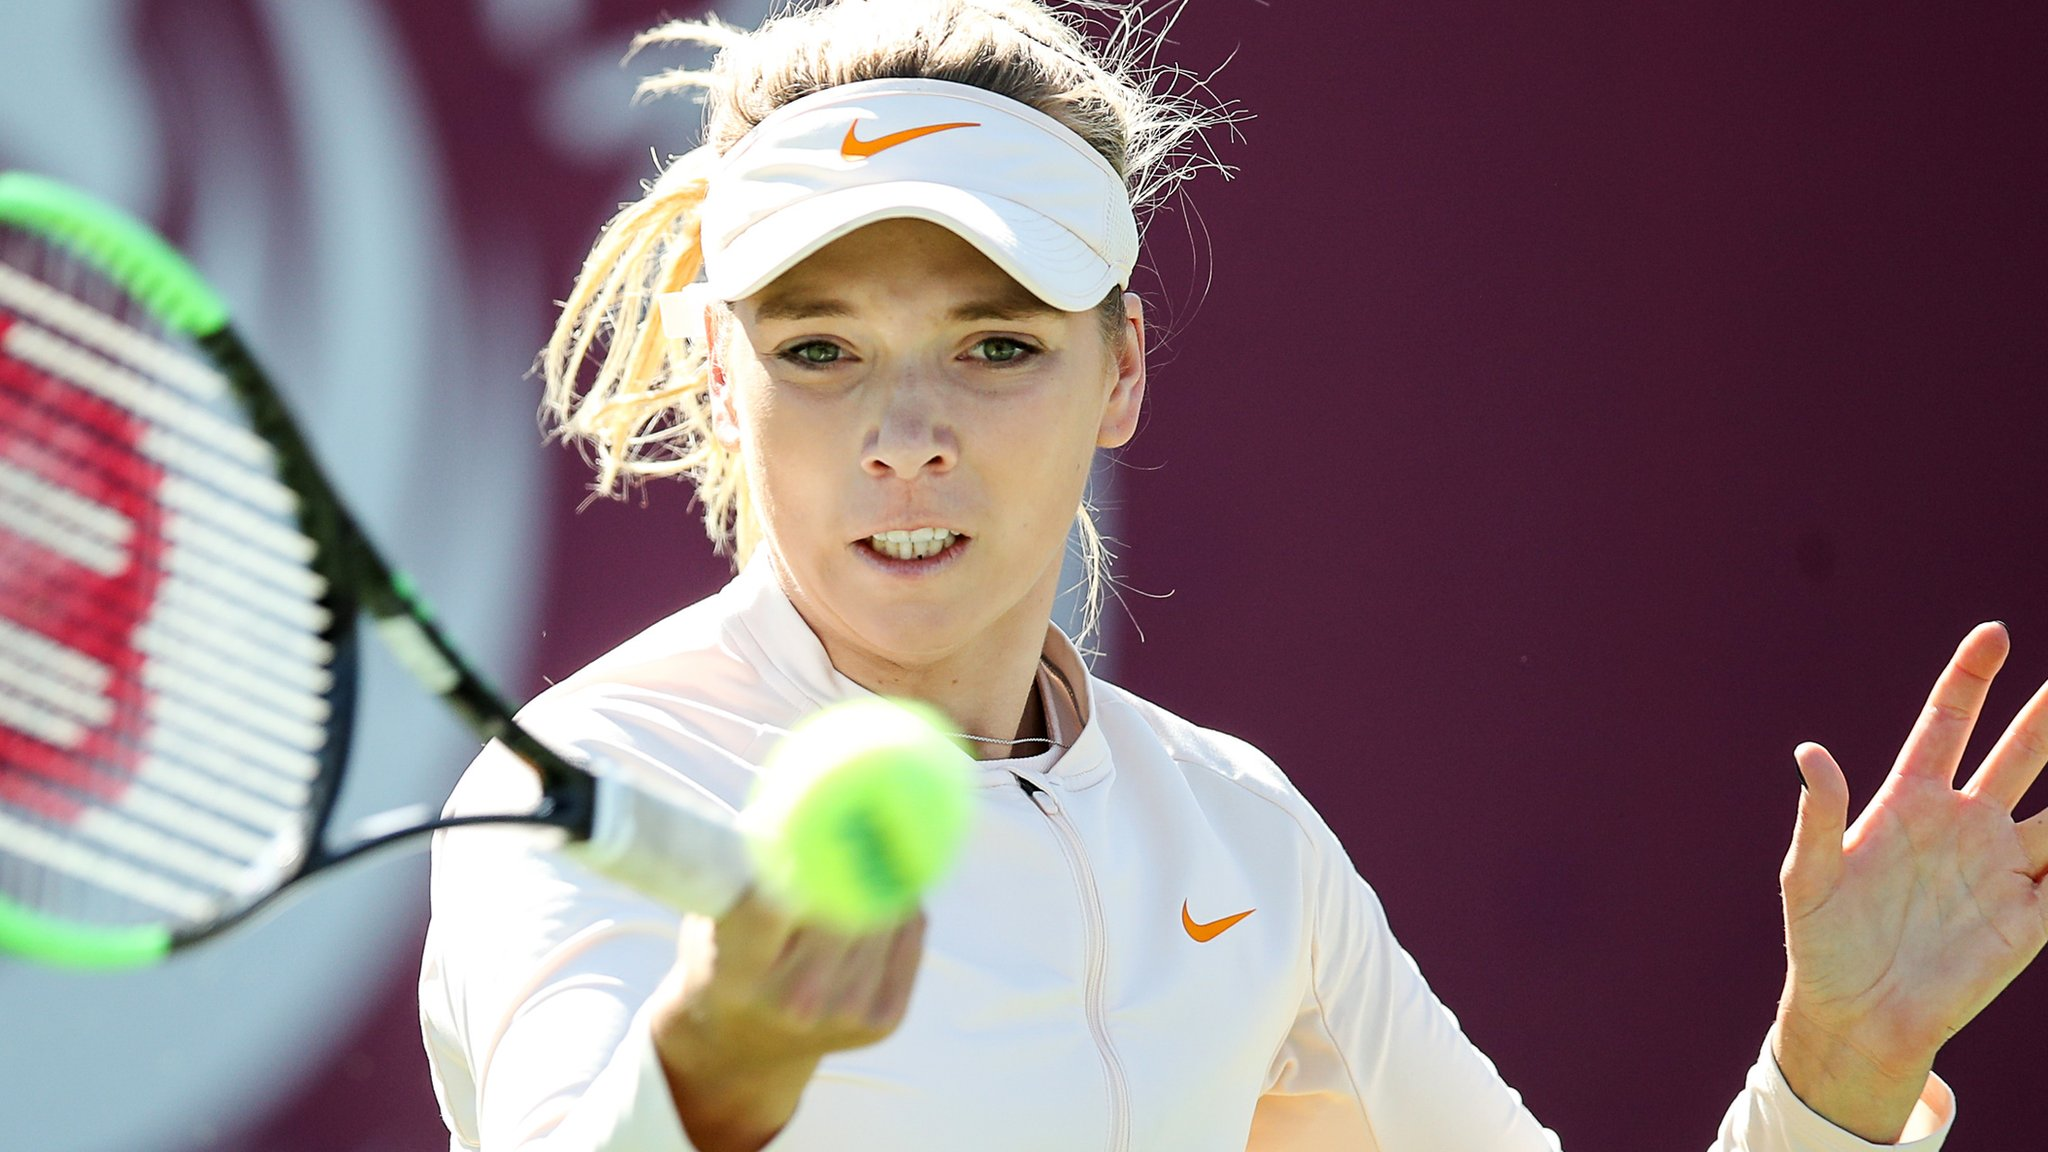 Britain's Boulter ranked in top 100 for first time